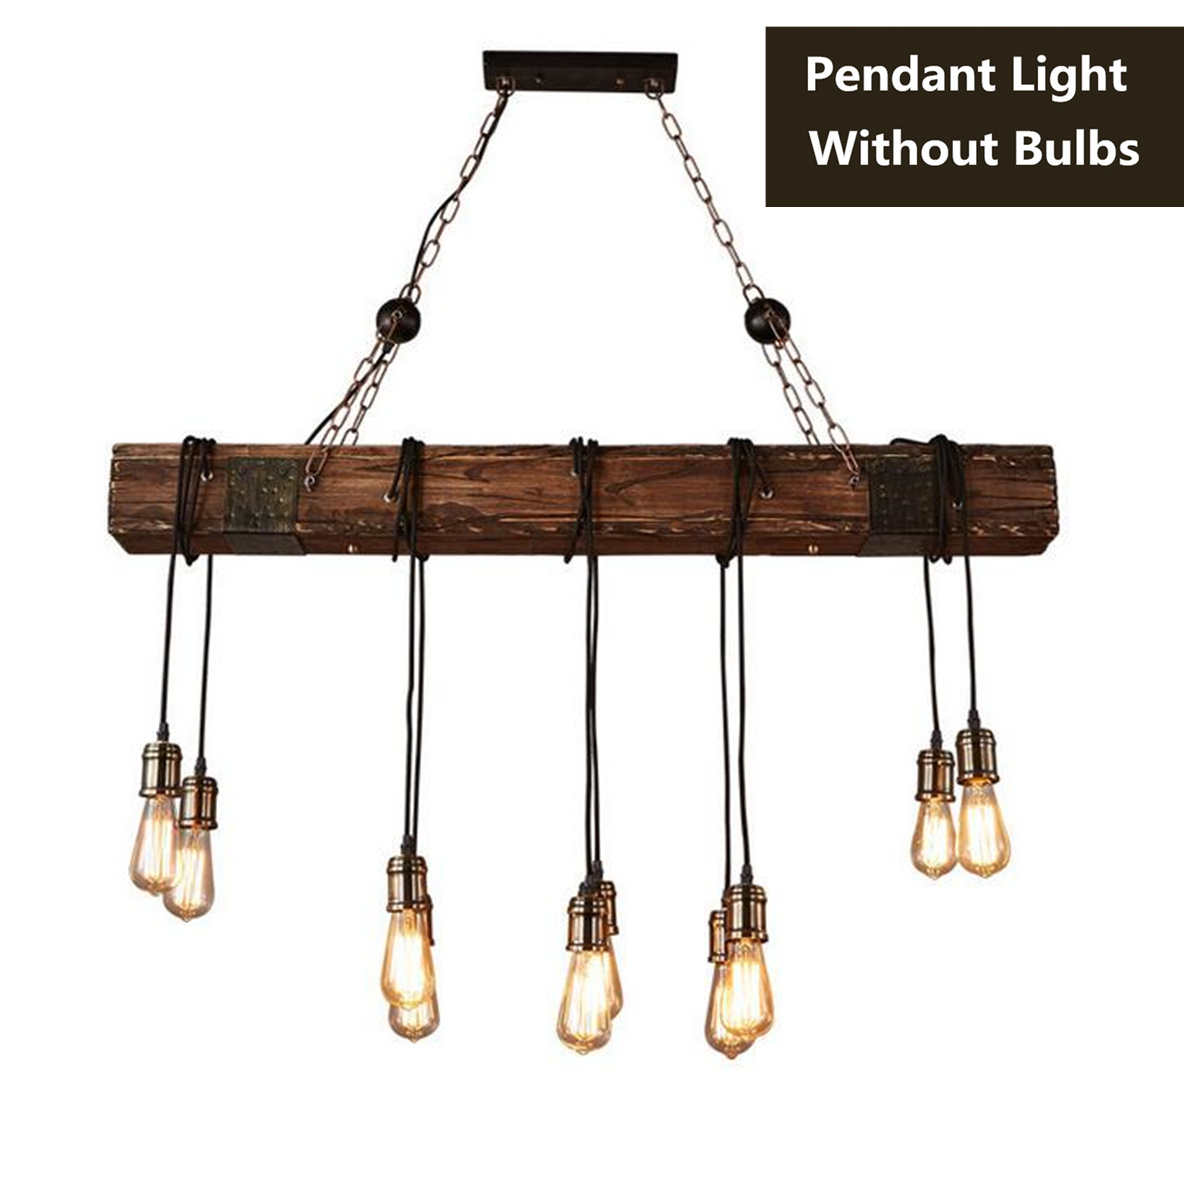 35 110v Rustic Farmhouse Furniture E26 Wood Beam Chandelier Pendant Lighting Fixture Kitchen Dining Room Bar Hotel Industrial Decor 10 Bulbs Not Included Walmart Com Walmart Com